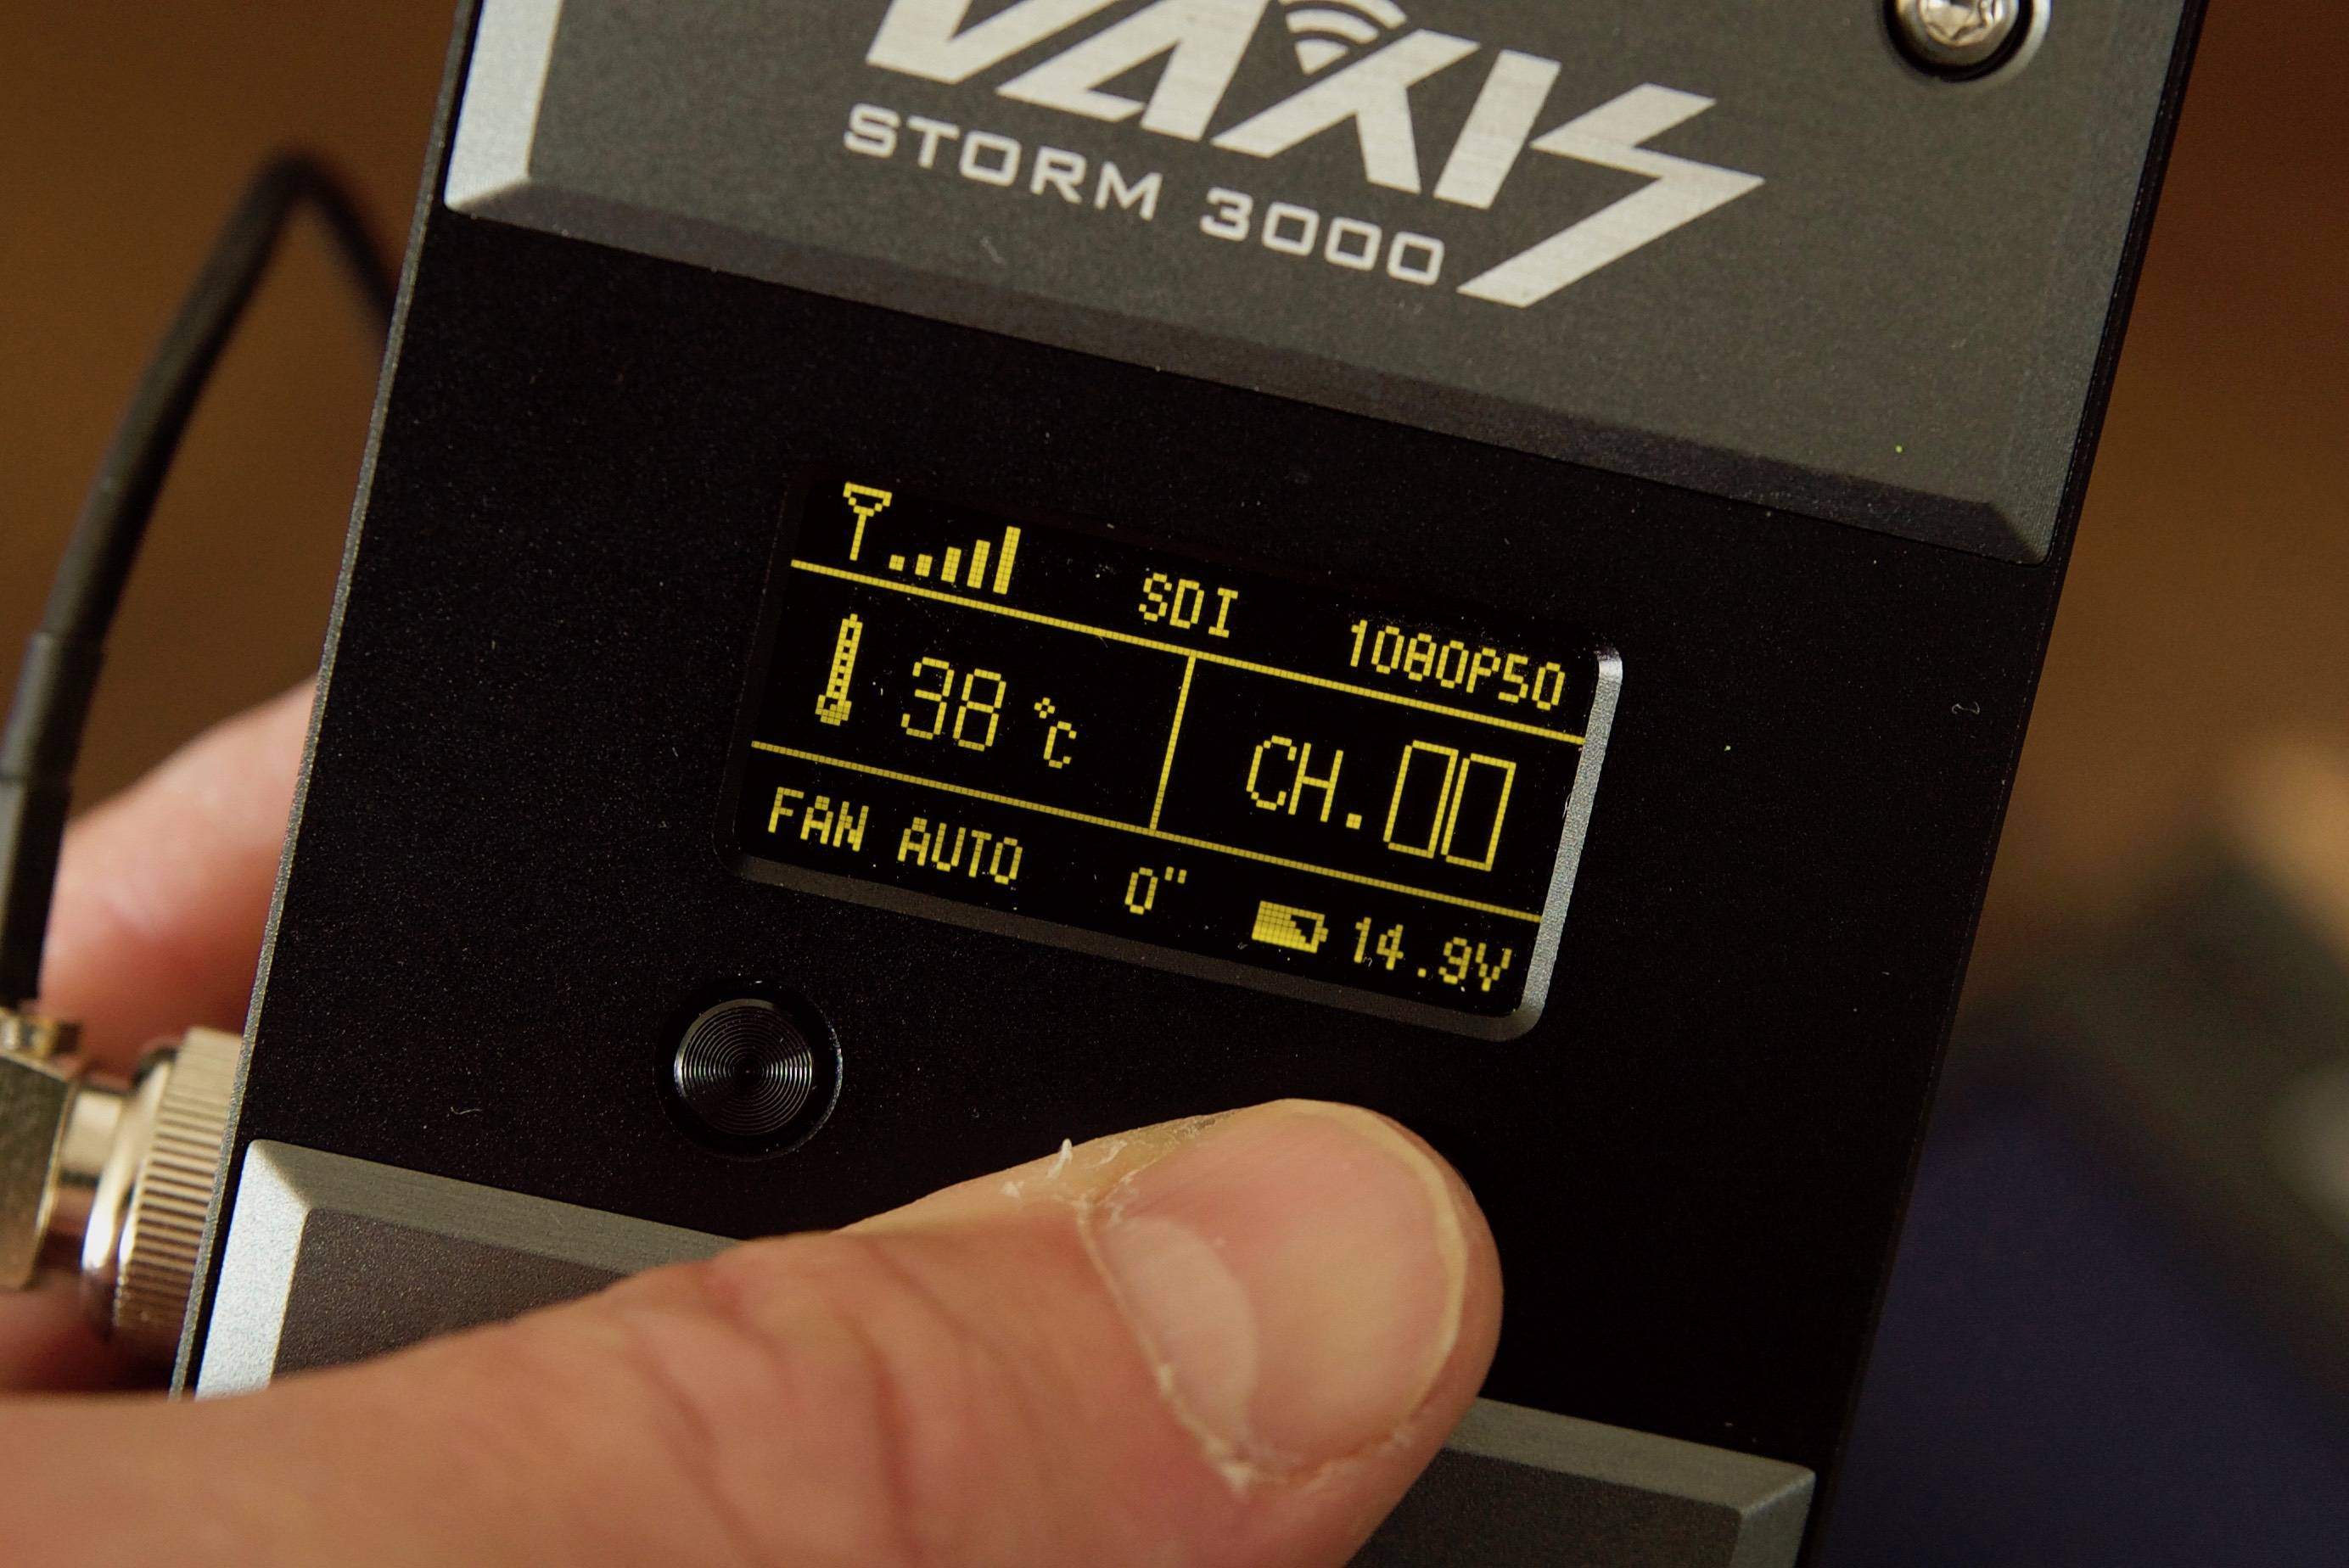 Vaxis Storm 3000 Wireless Kit Review - Newsshooter